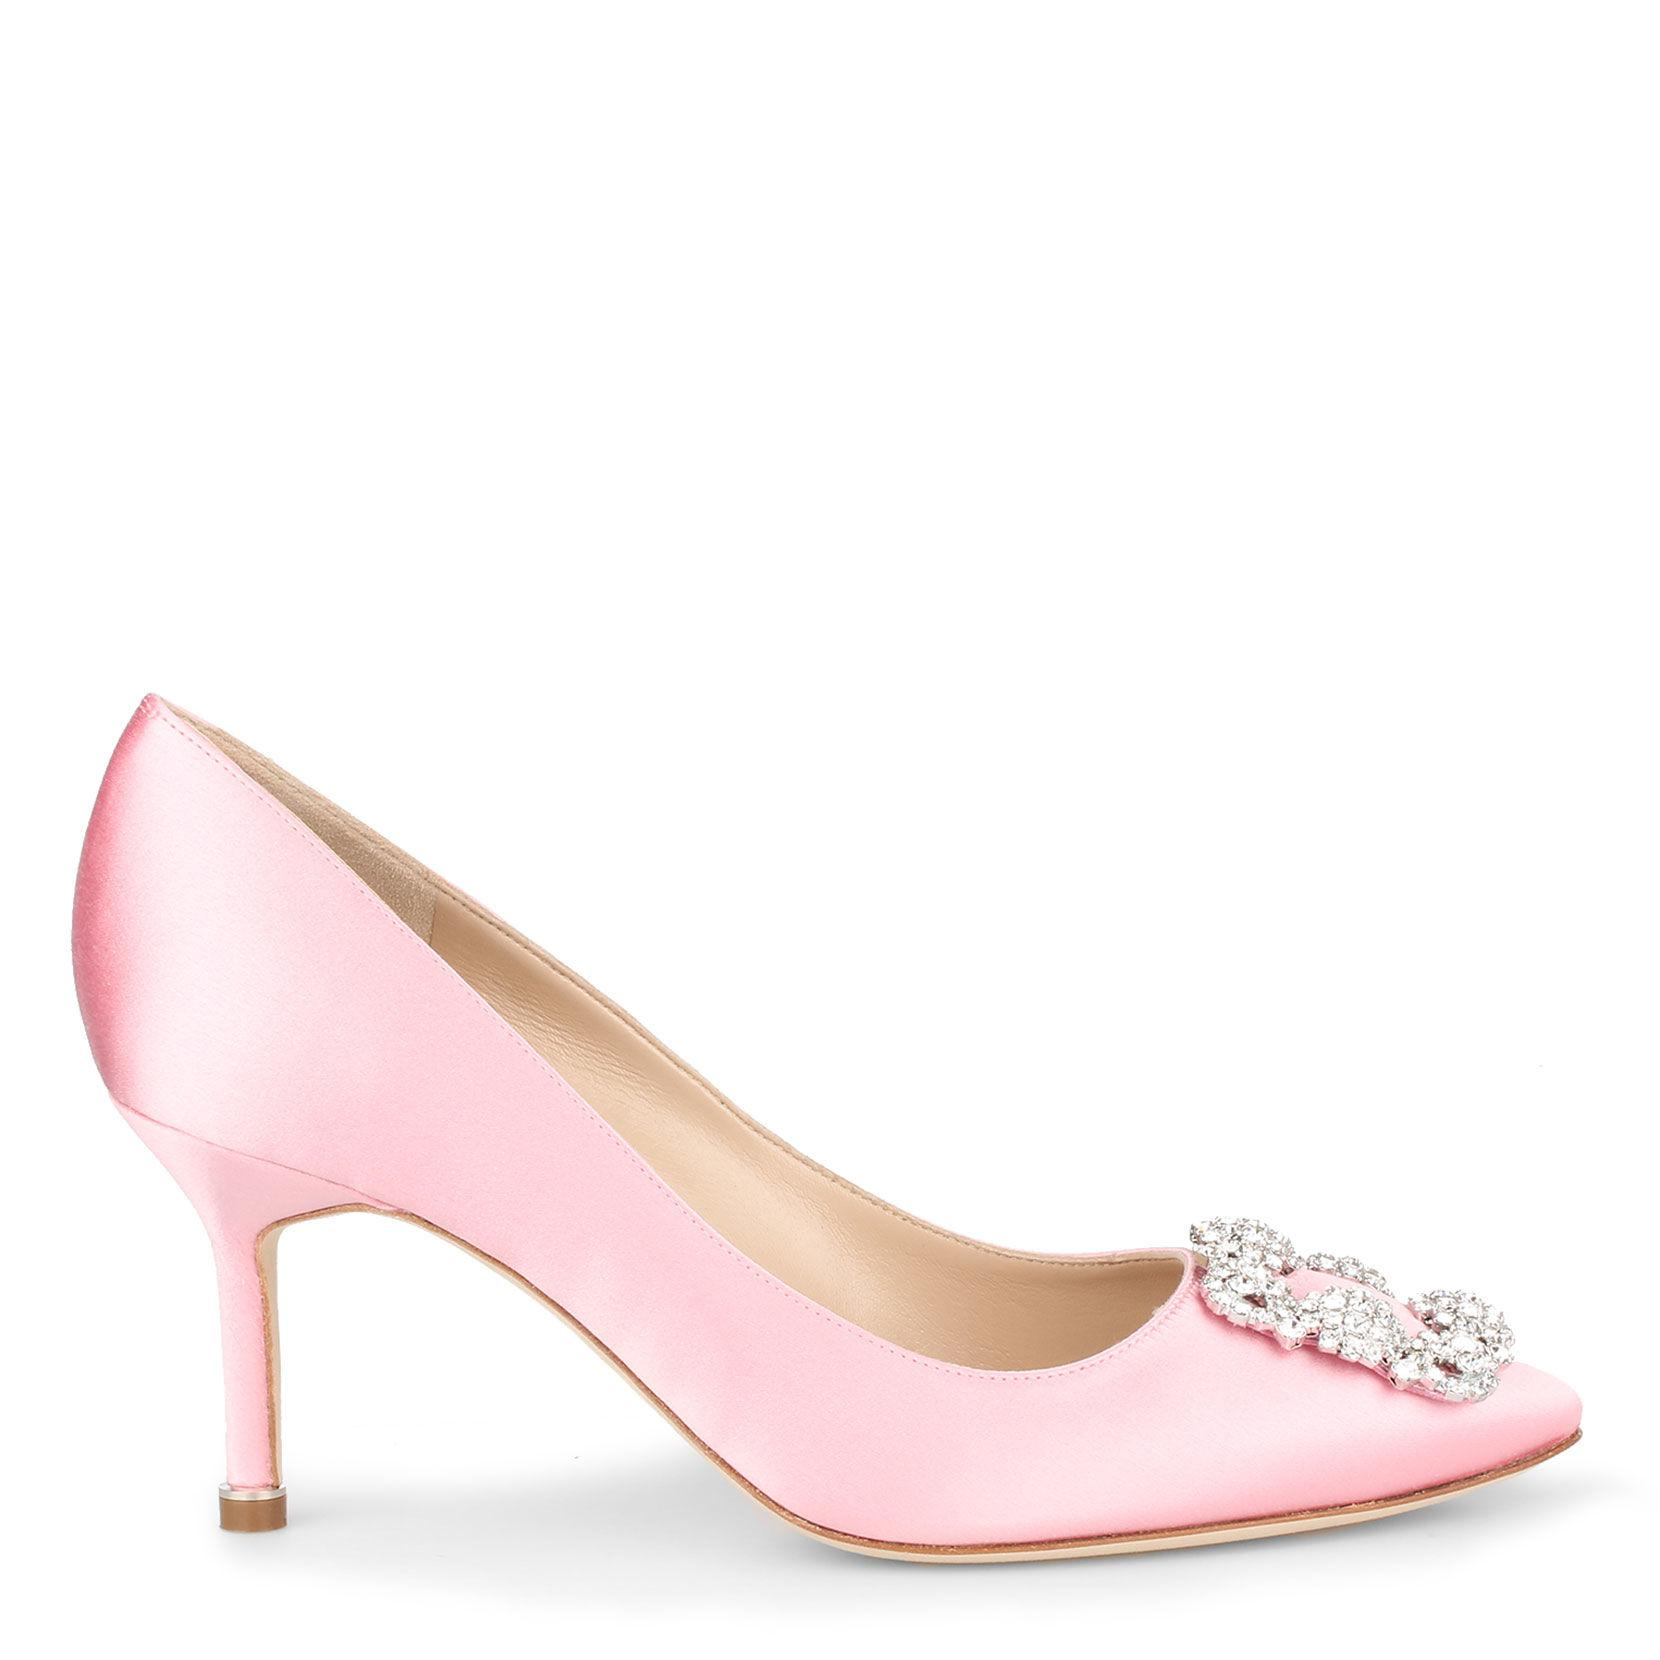 ec87e8bf97e1 Manolo Blahnik - Hangisi 70 Satin Pump Light Pink - Lyst. View fullscreen